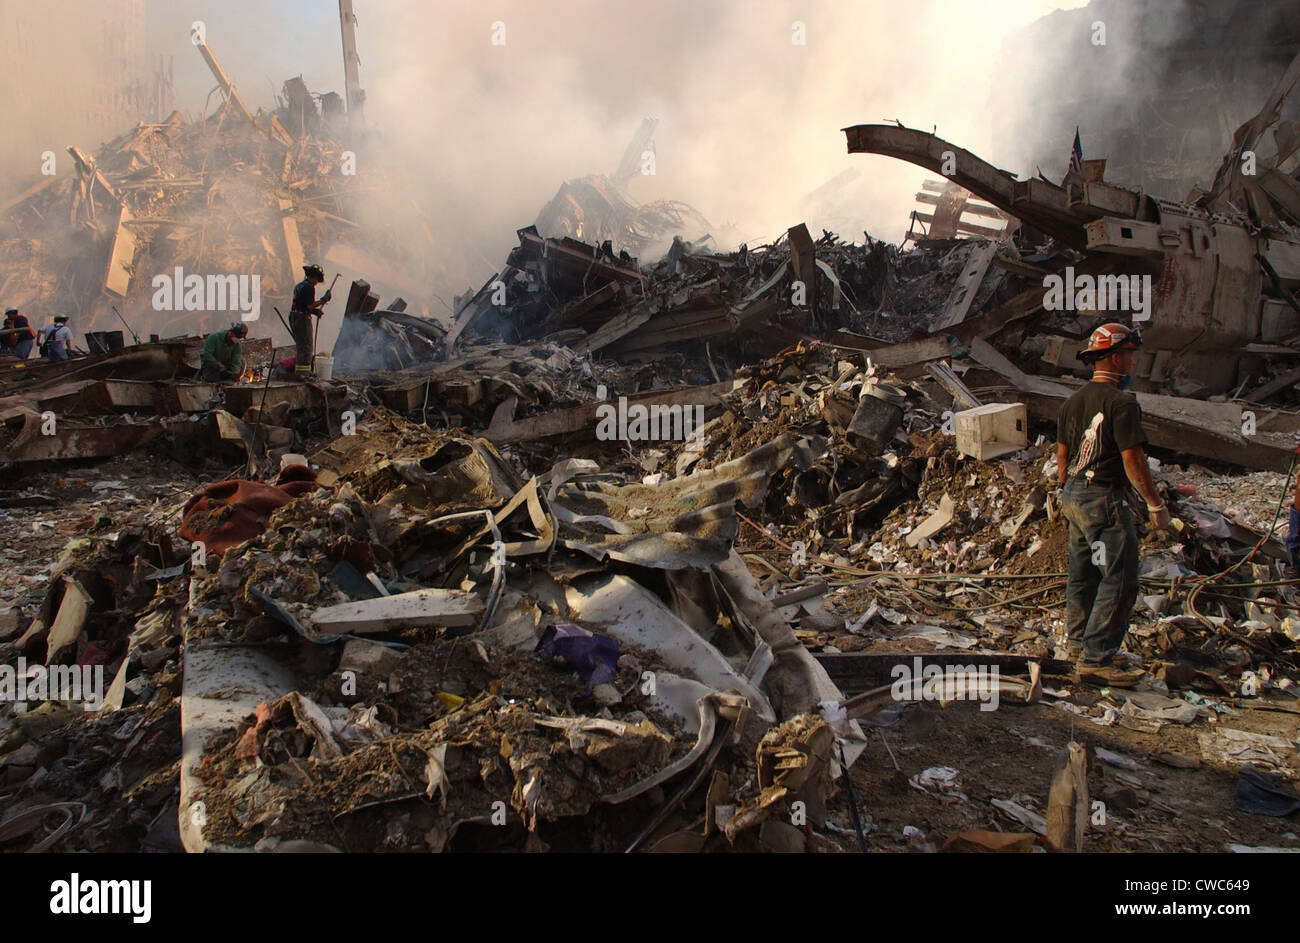 Twisted Steel High Resolution Stock Photography and Images - Alamy